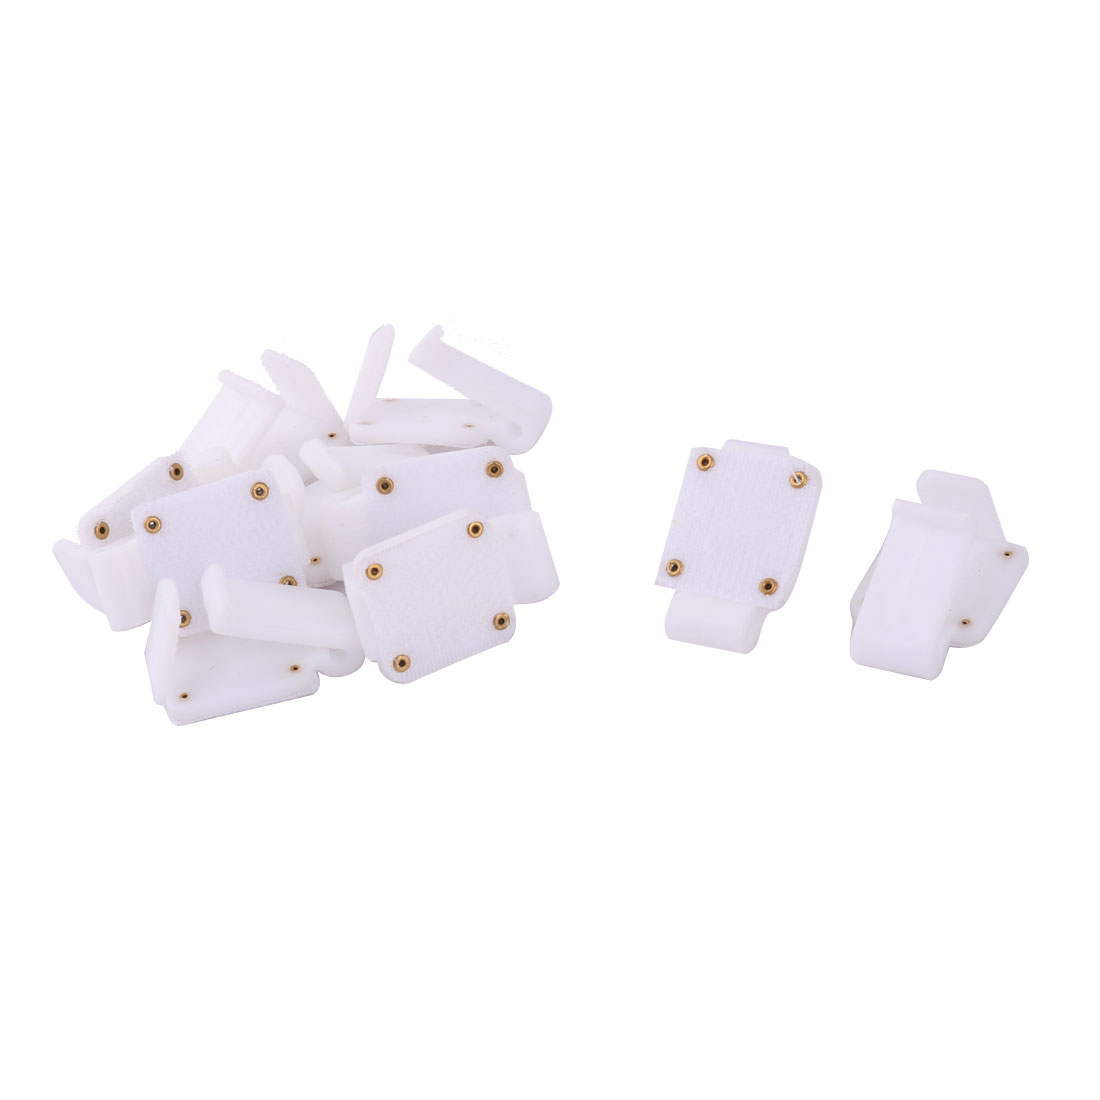 Outdoor Picnic Plastic Tablecloth Fastener Clips Clamps Cover Holder White 12pcs